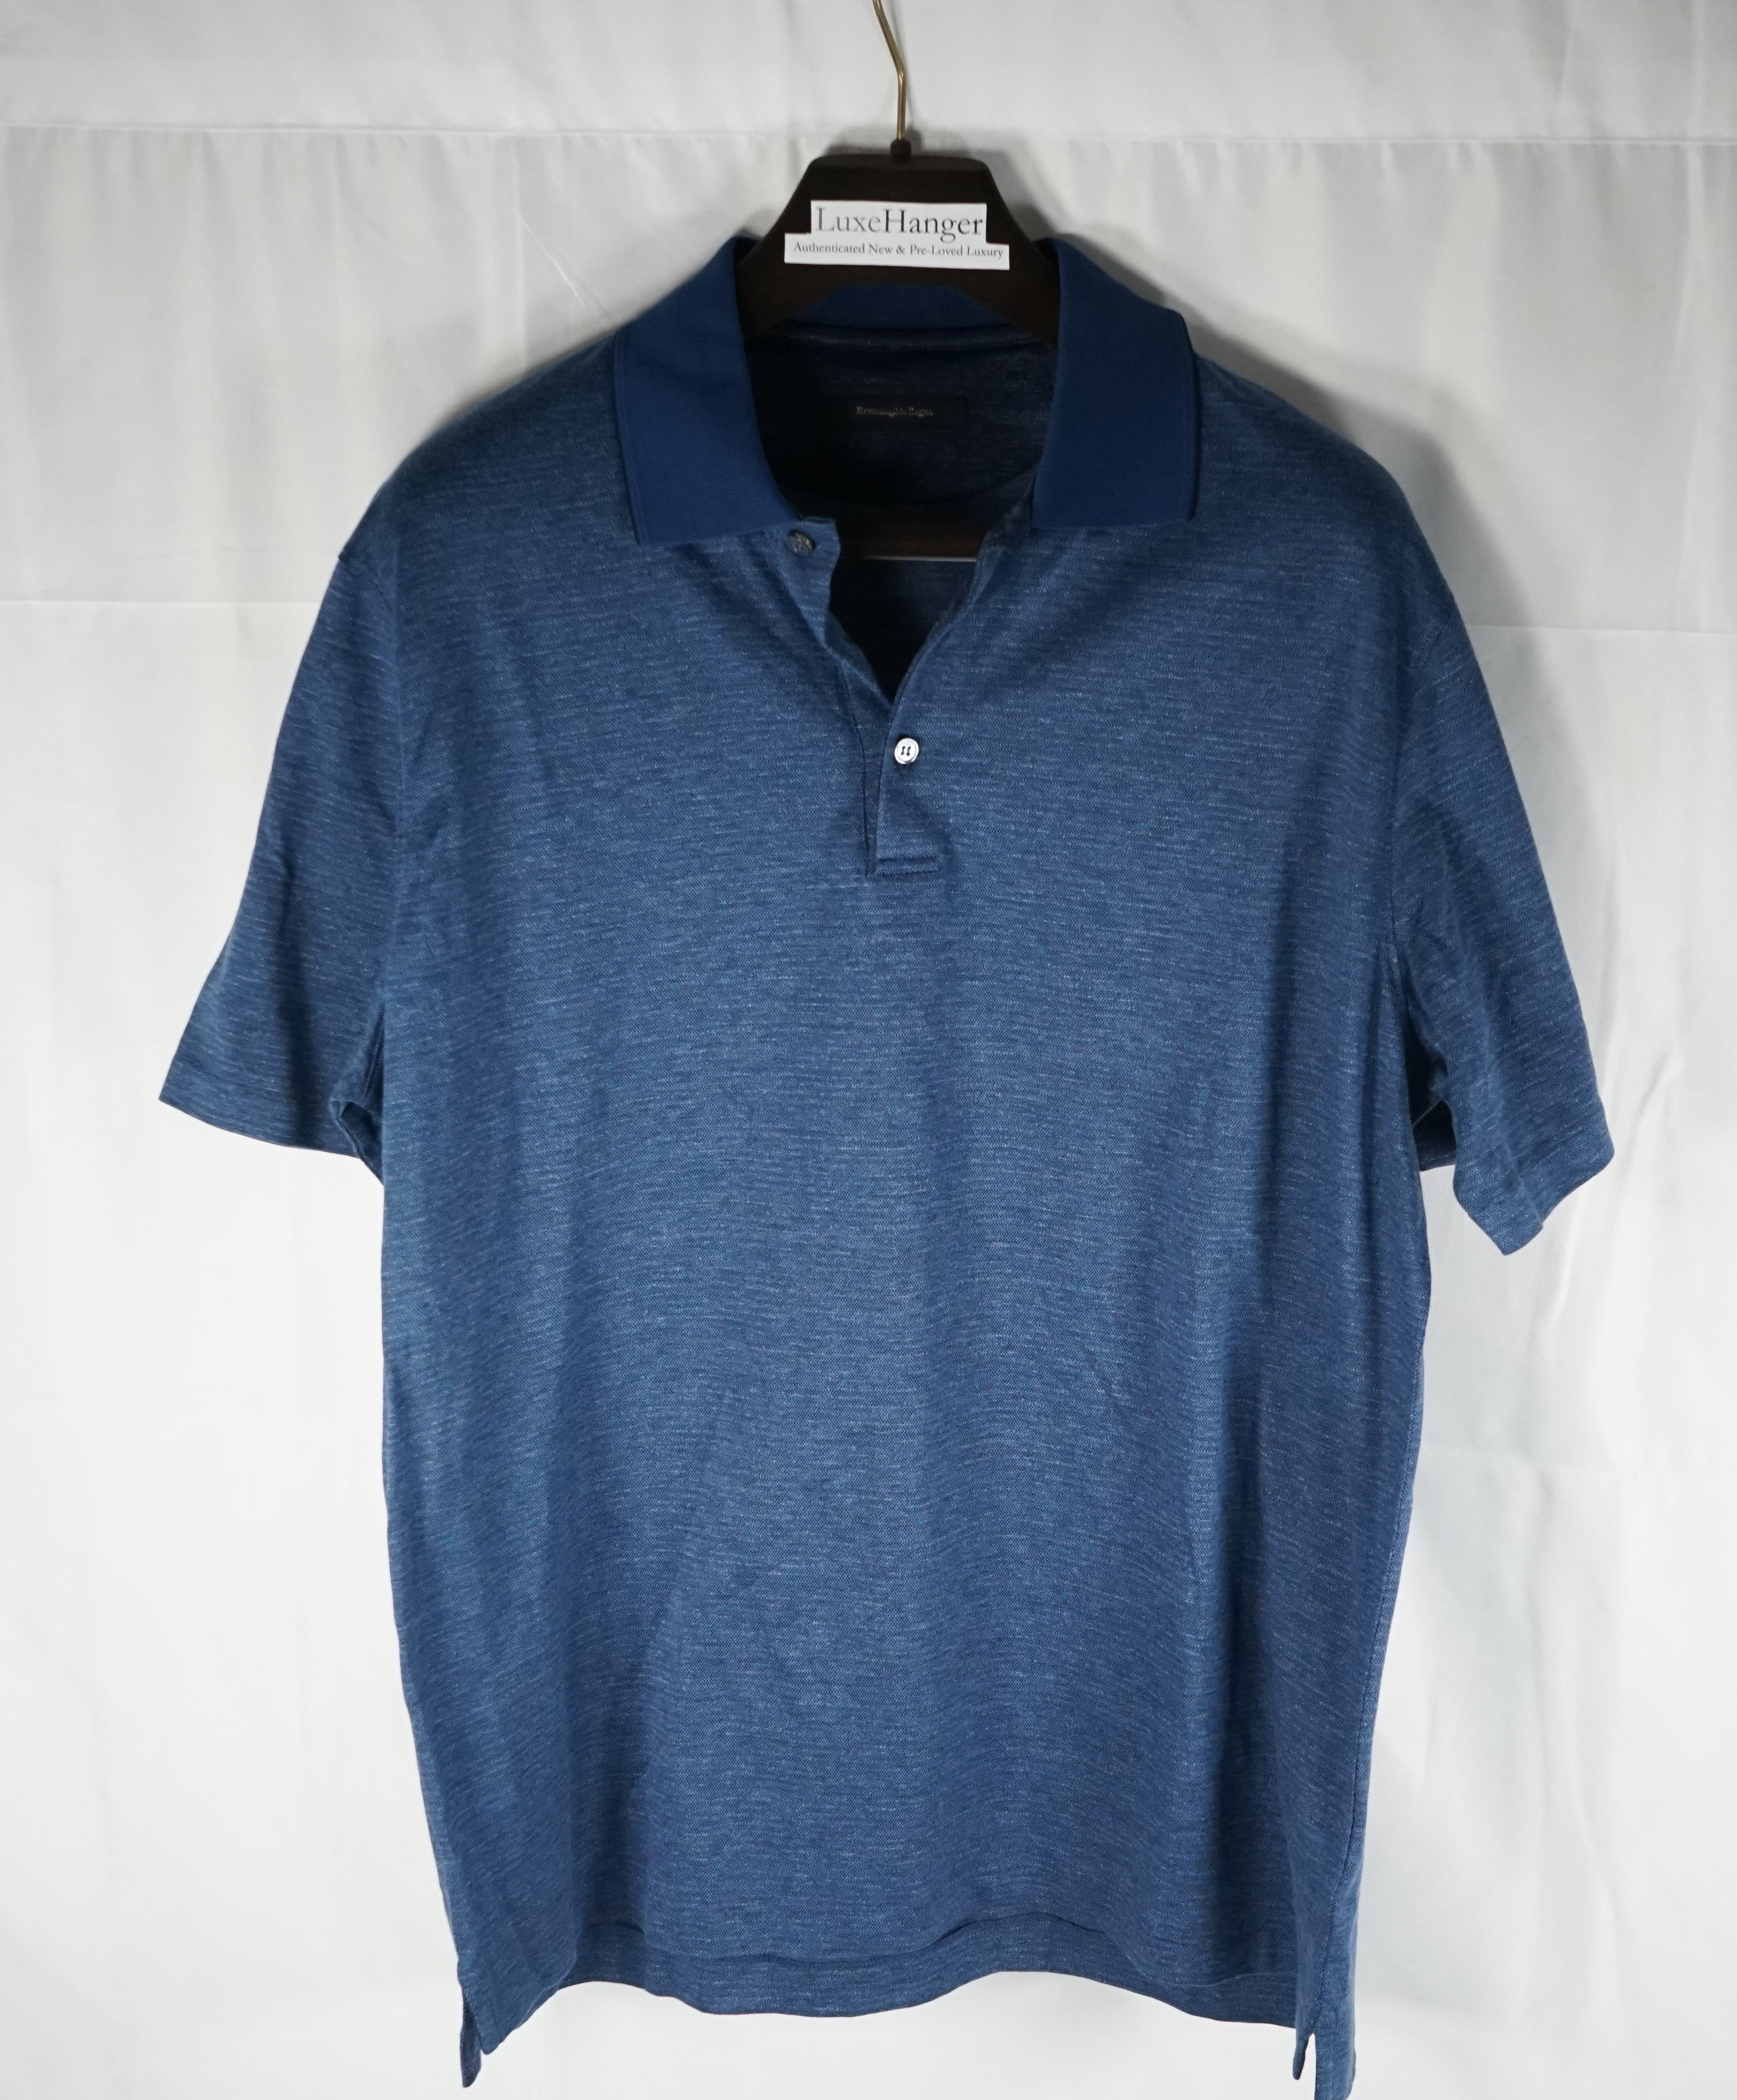 ERMENEGILDO ZEGNA - Blue Tipped Polo Shirt W Engraved Buttons - L